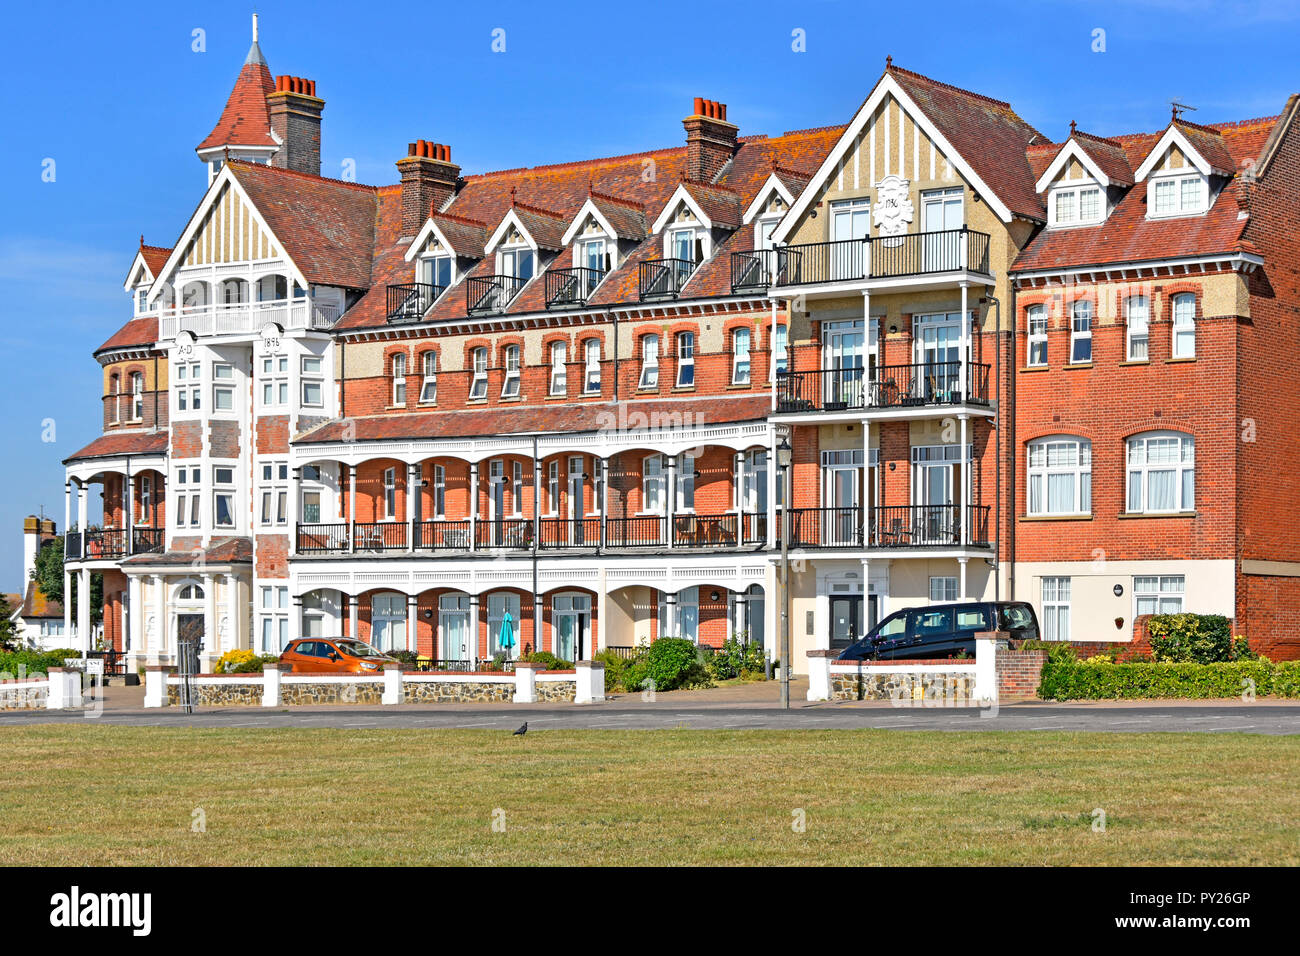 Victorian building was the Grand Hotel on seafront esplanade now Grand Apartments accommodation at the seaside holiday resort  Frinton on Sea Essex UK - Stock Image